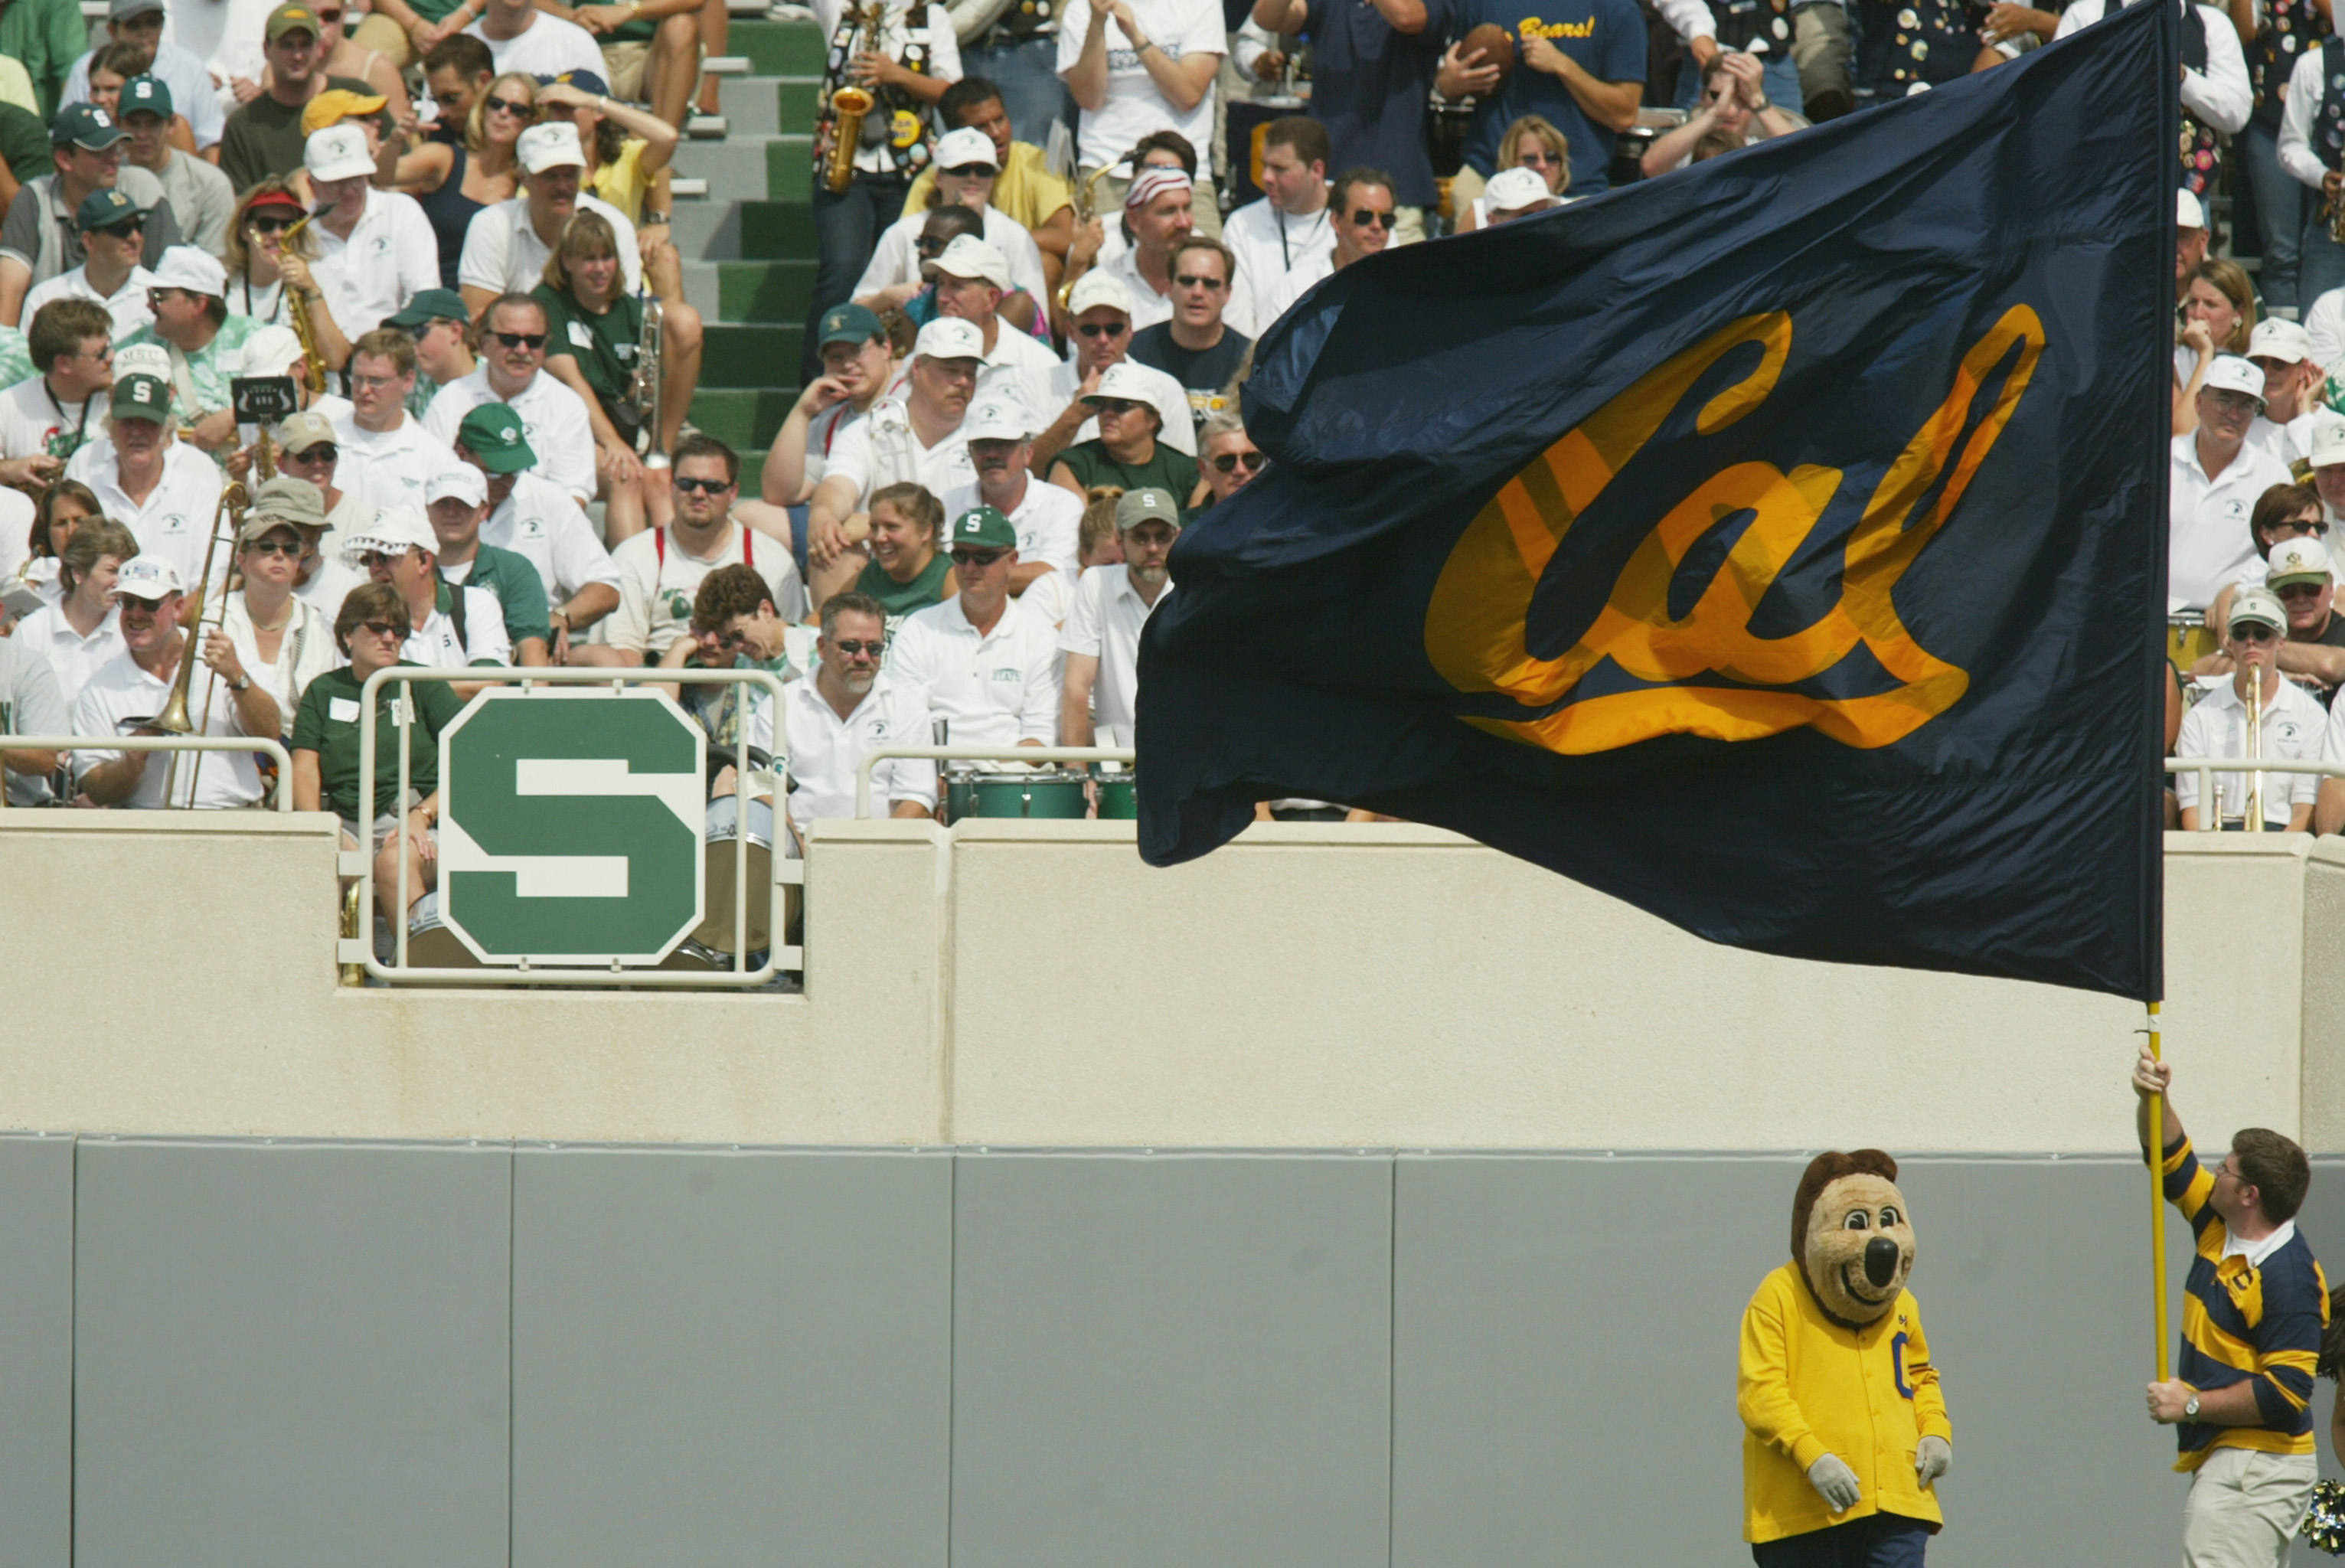 EAST LANSING, MI - SEPTEMBER 14:  A member of the California Golden Bears spirit squad waves a team flag while standing next to the Bears' mascot in front of the Michigan State Spartans crowd on September 14, 2002 at Spartan Stadium in East Lansing, Michi